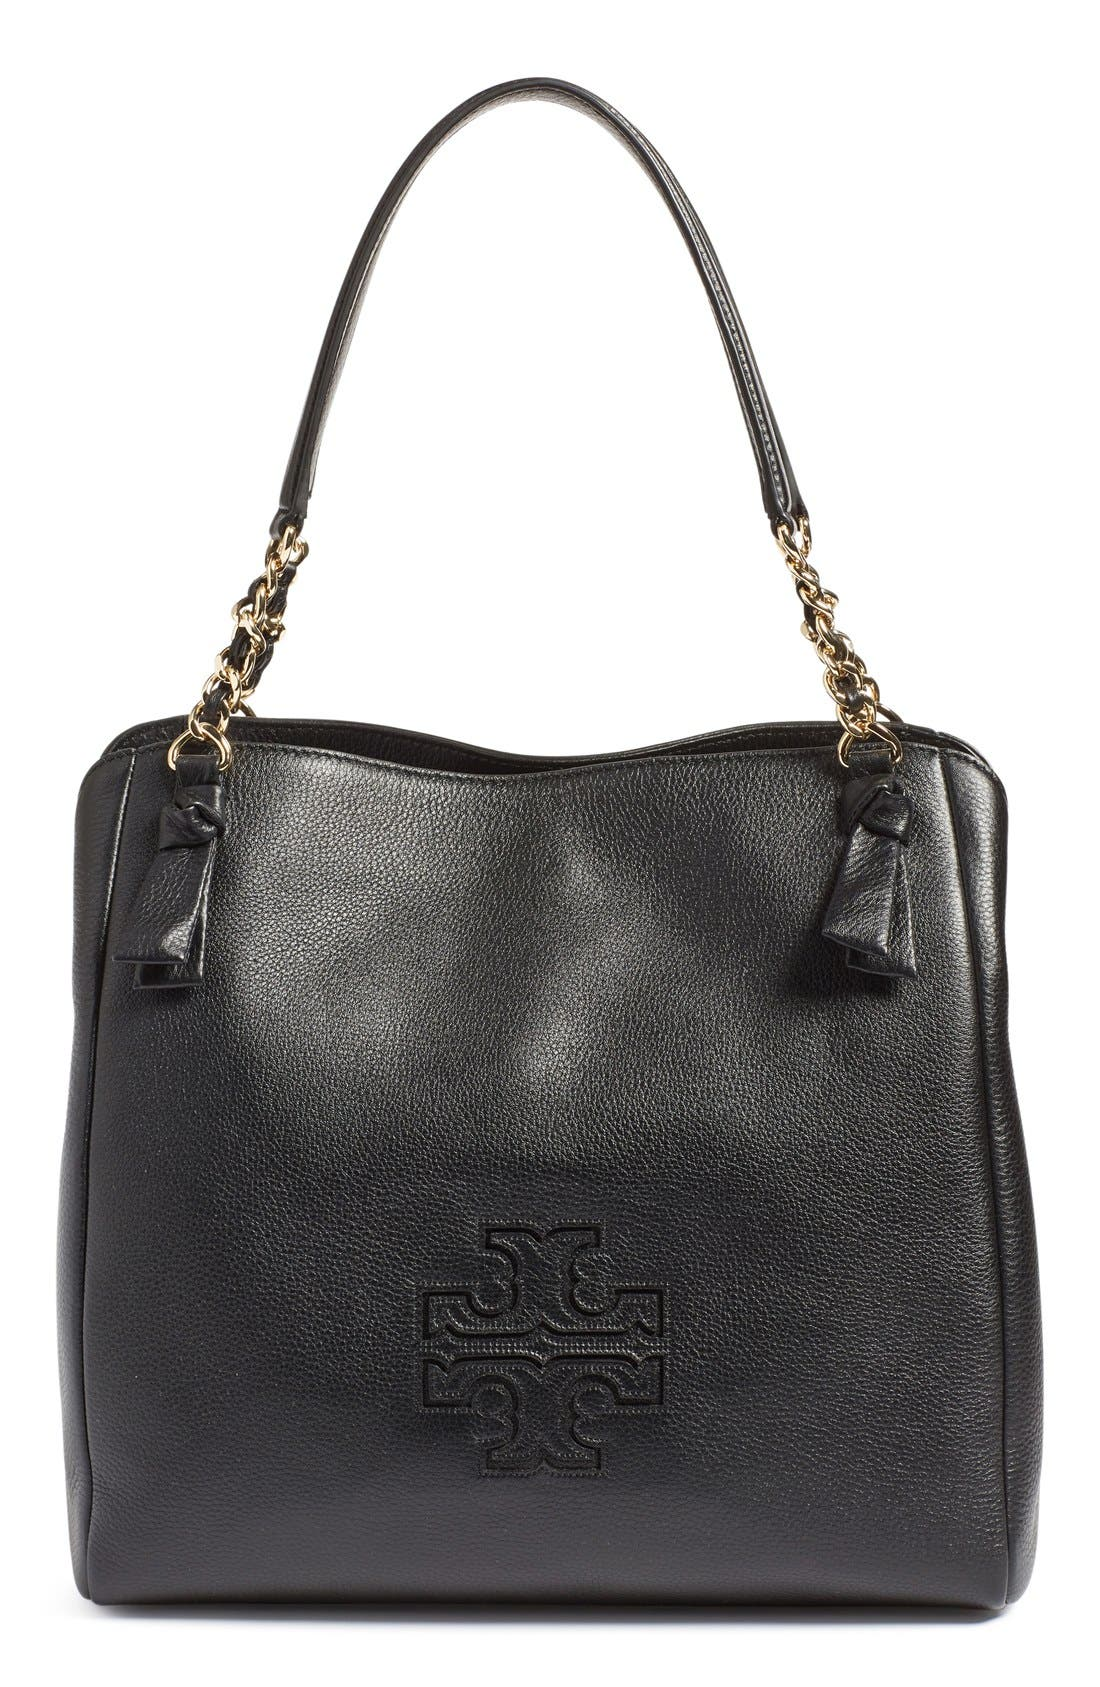 Tory Burch Harper Leather Tote Nordstrom